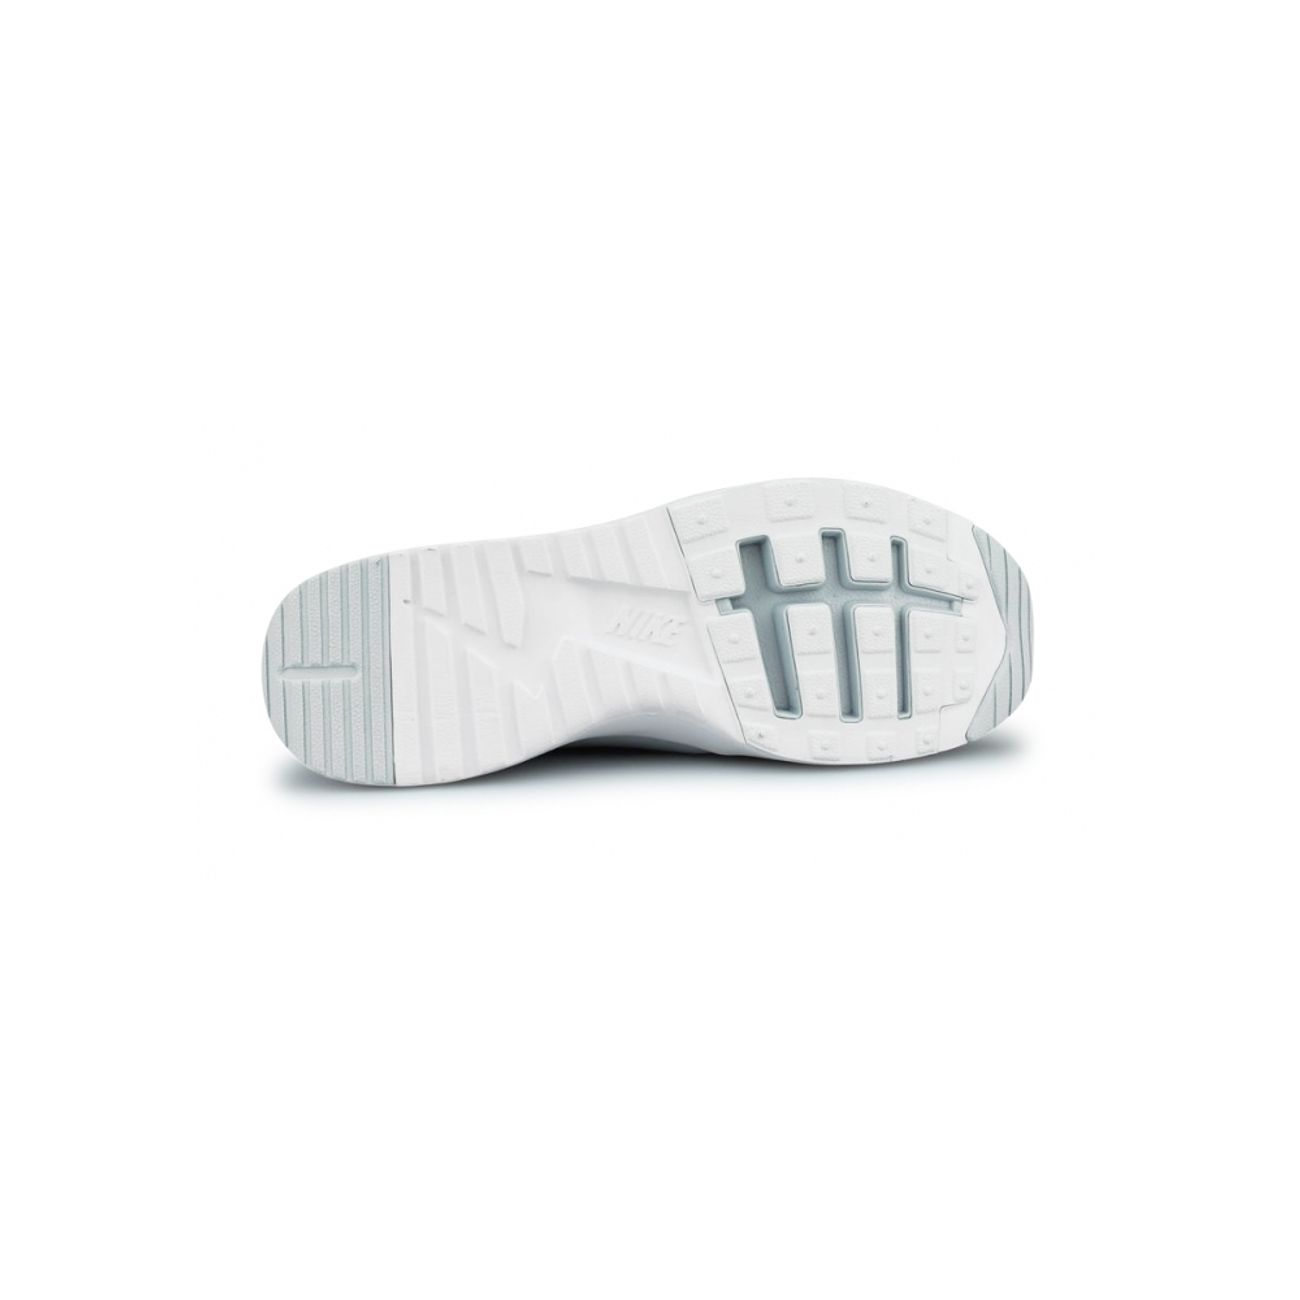 timeless design ea1c7 b3f80 ... Mode- Lifestyle femme NIKE Basket Wmns Nike Air Max Thea Ultra Fk  Platine 881175- ...